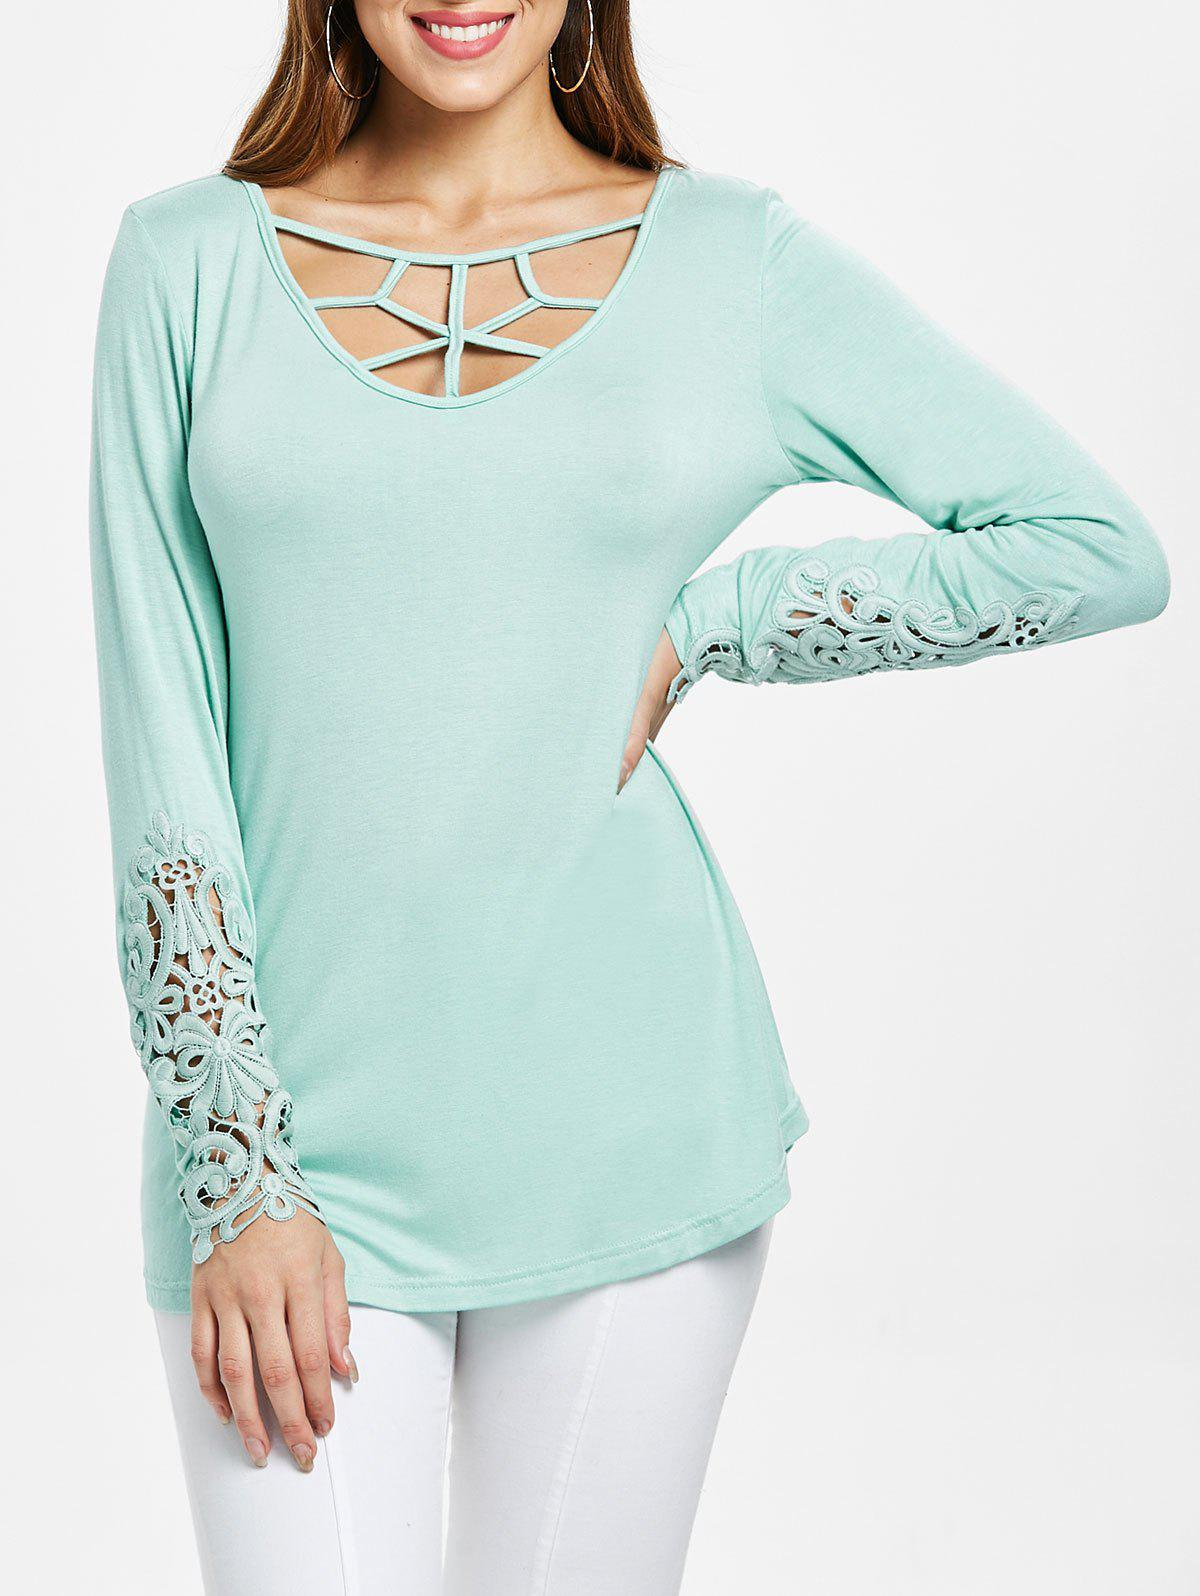 251cf3ca7 63% OFF] Lattice Cut Front Lace Panel Cuff T-shirt | Rosegal